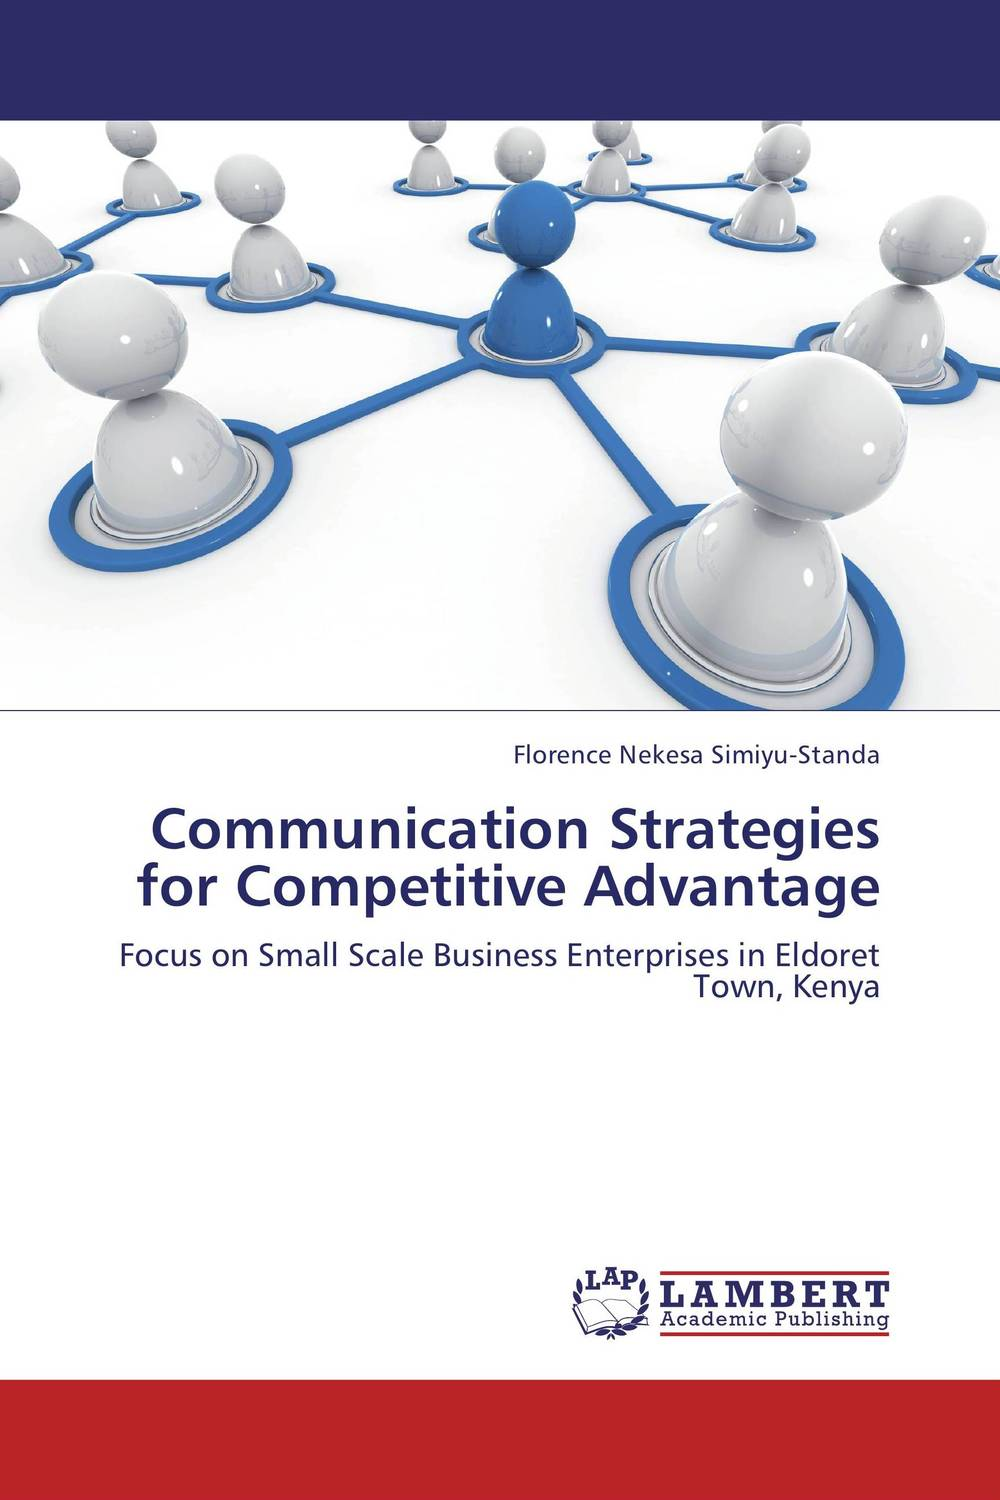 Communication Strategies for Competitive Advantage mastering business communication macmillan master series business